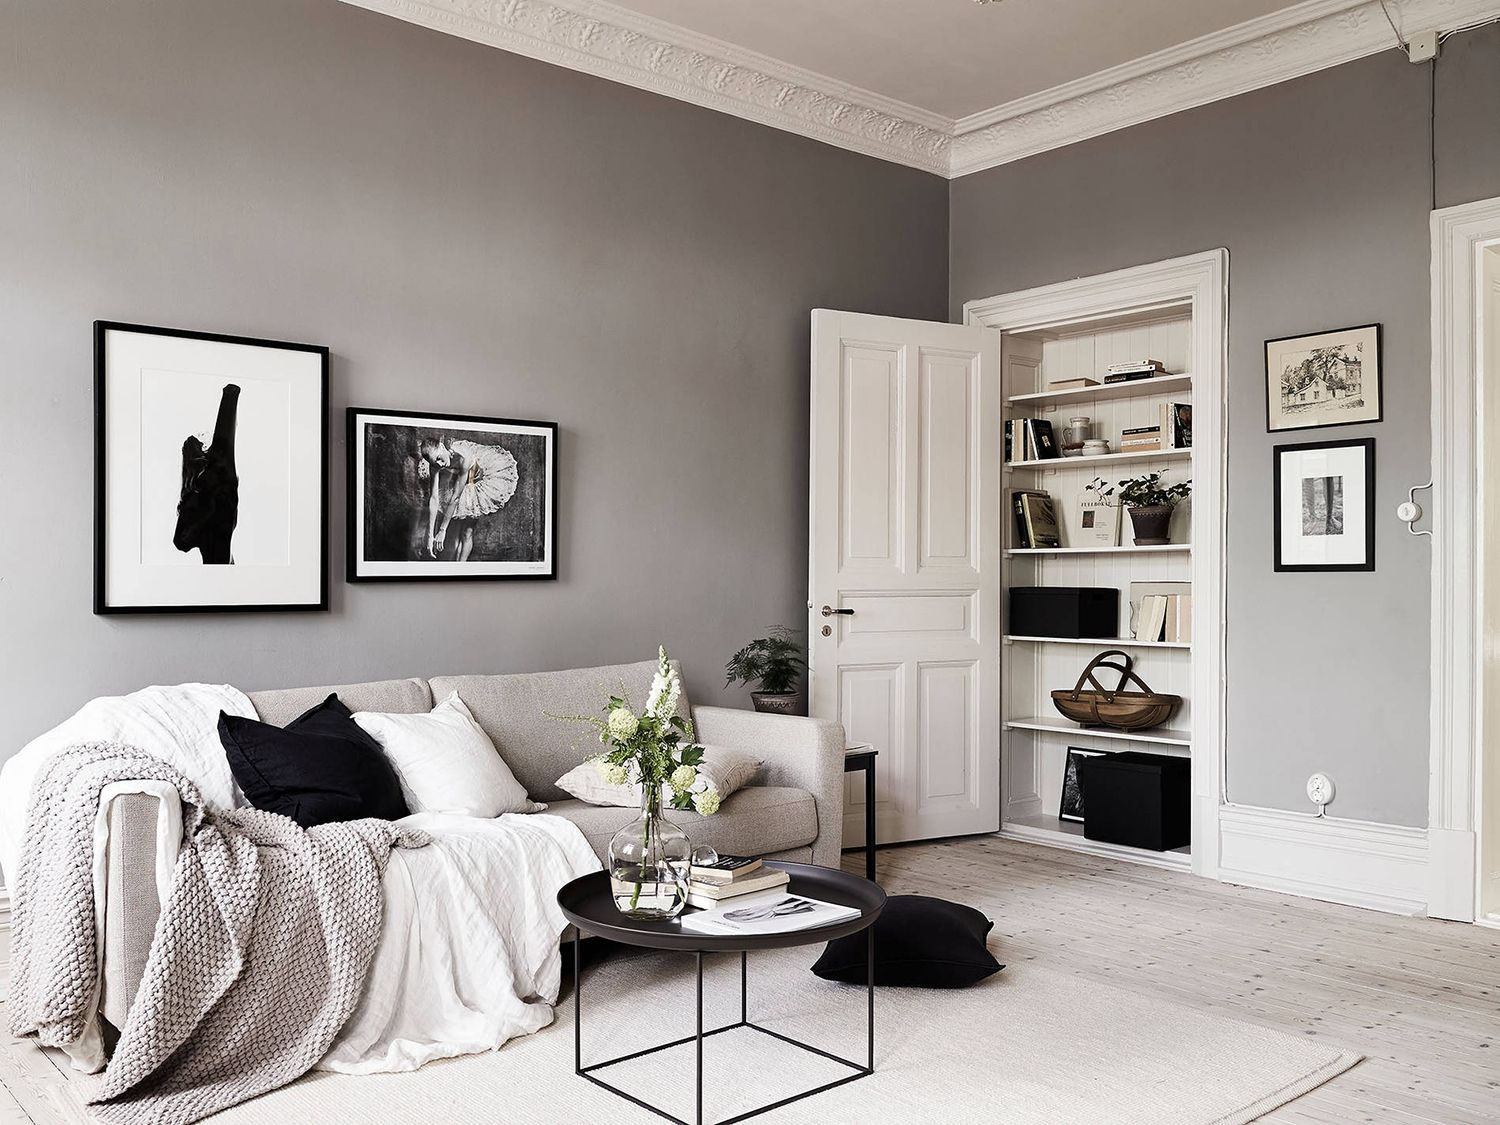 A Swedish Home With Neutral Colors Gray White And Black Color Scheme Industrial Rustic Style